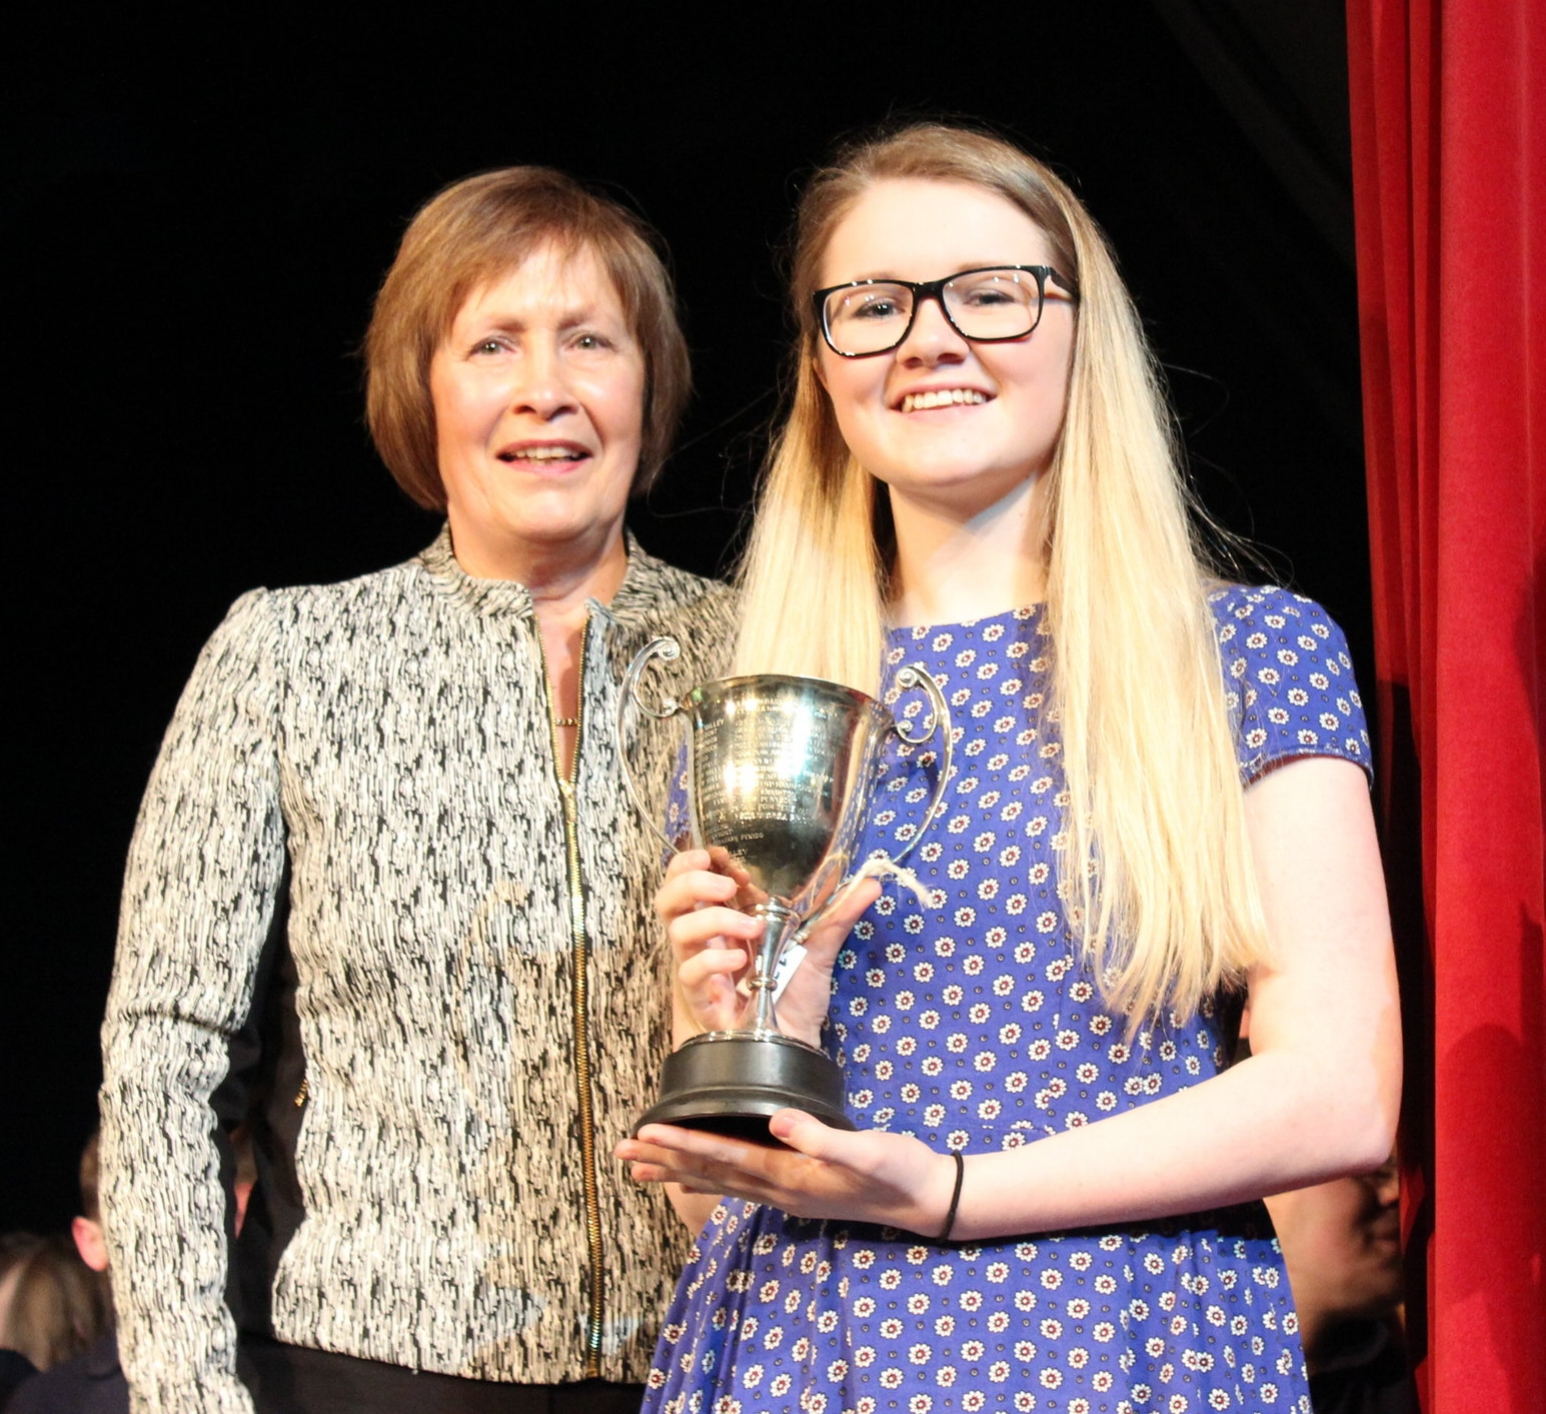 Eli Hulin Taylor - Penybont YFC - Watson Cup - Best Musician 26 Years and Under